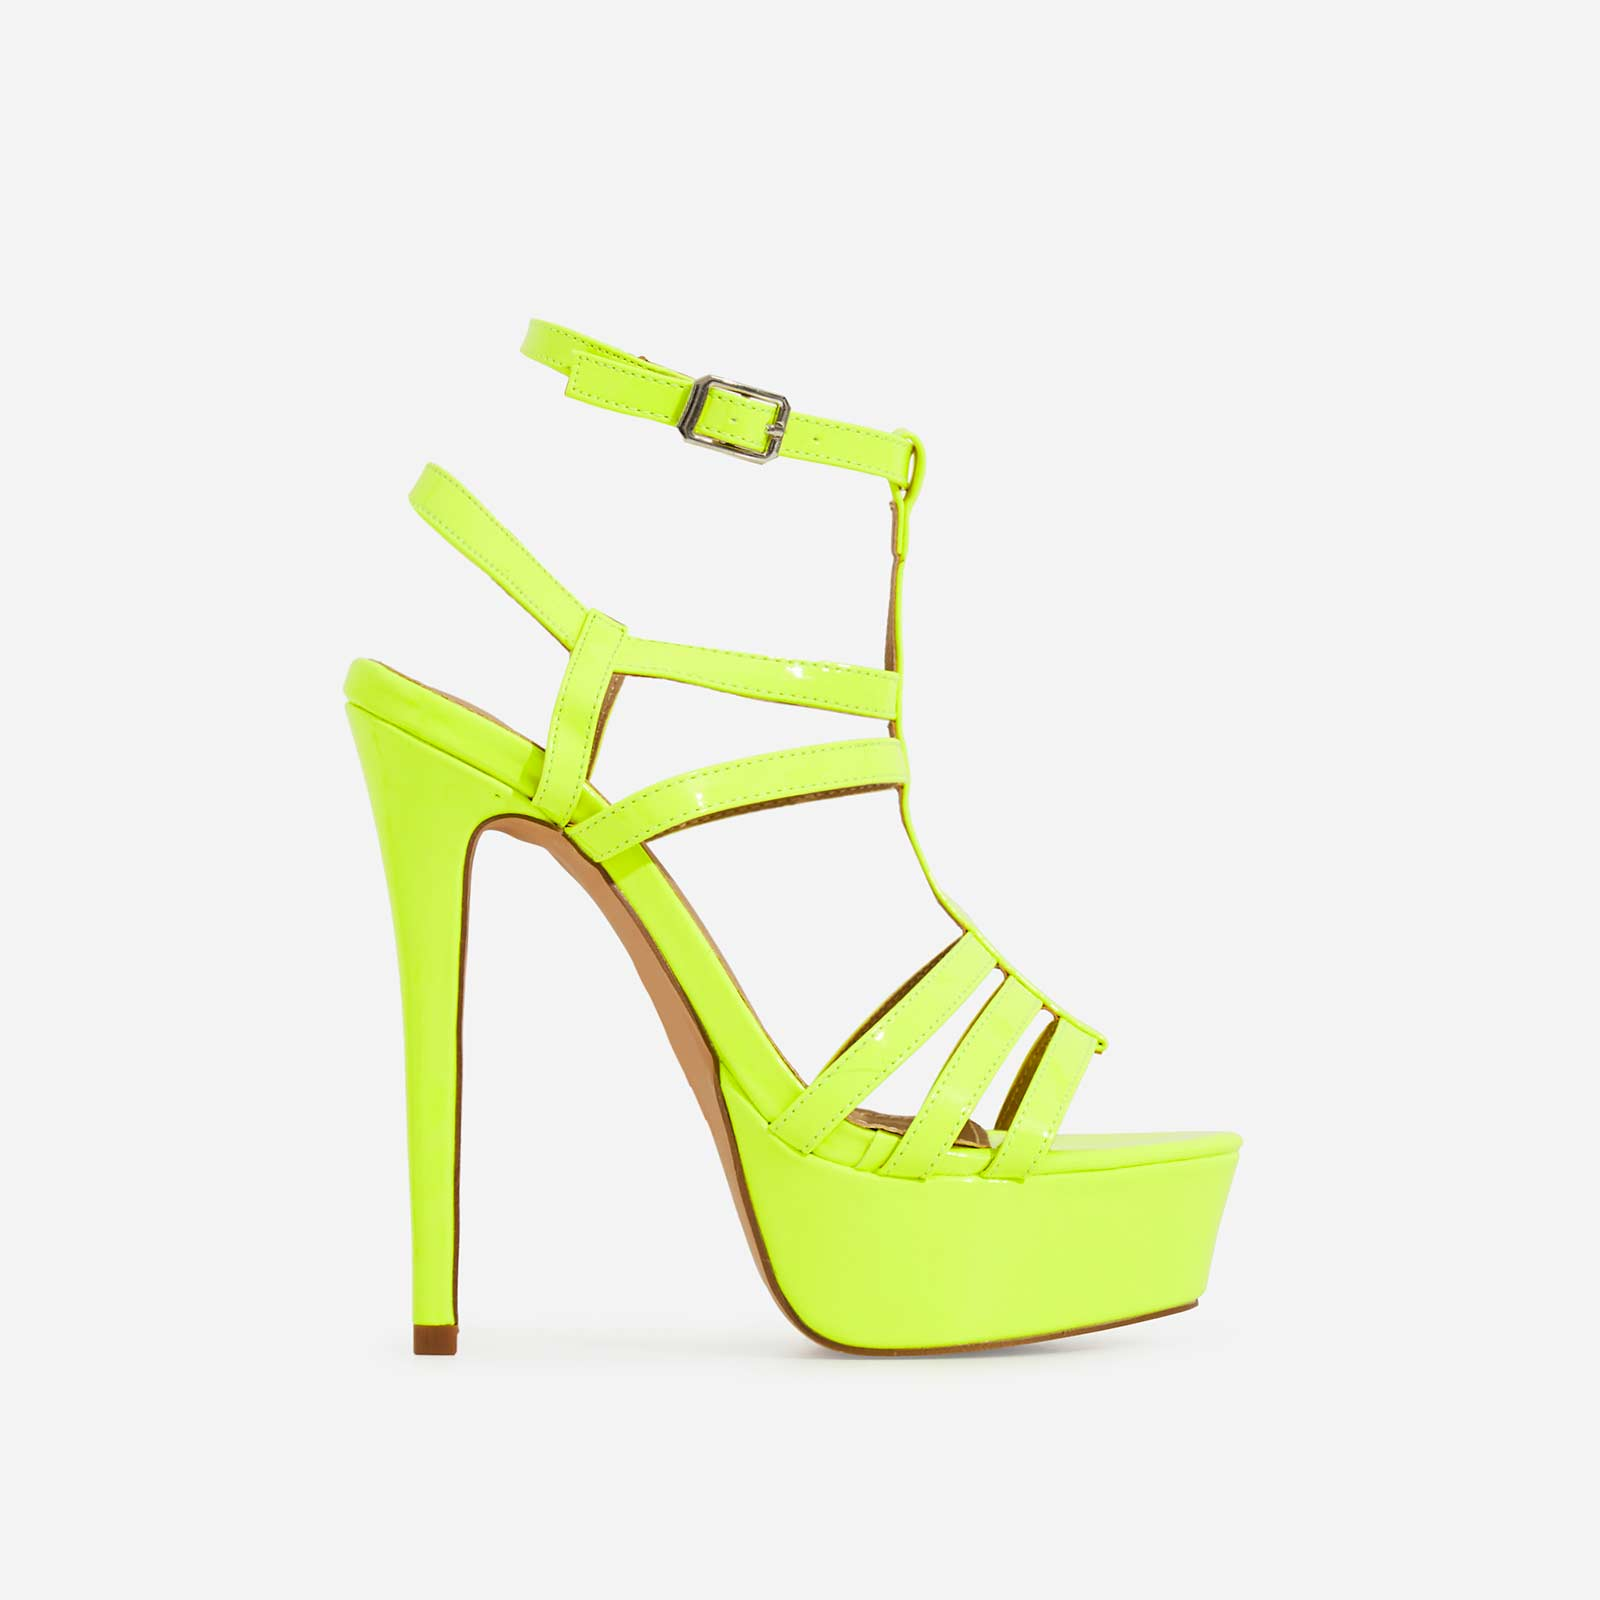 Iconic Cage Platform Heel In Lime Green Patent